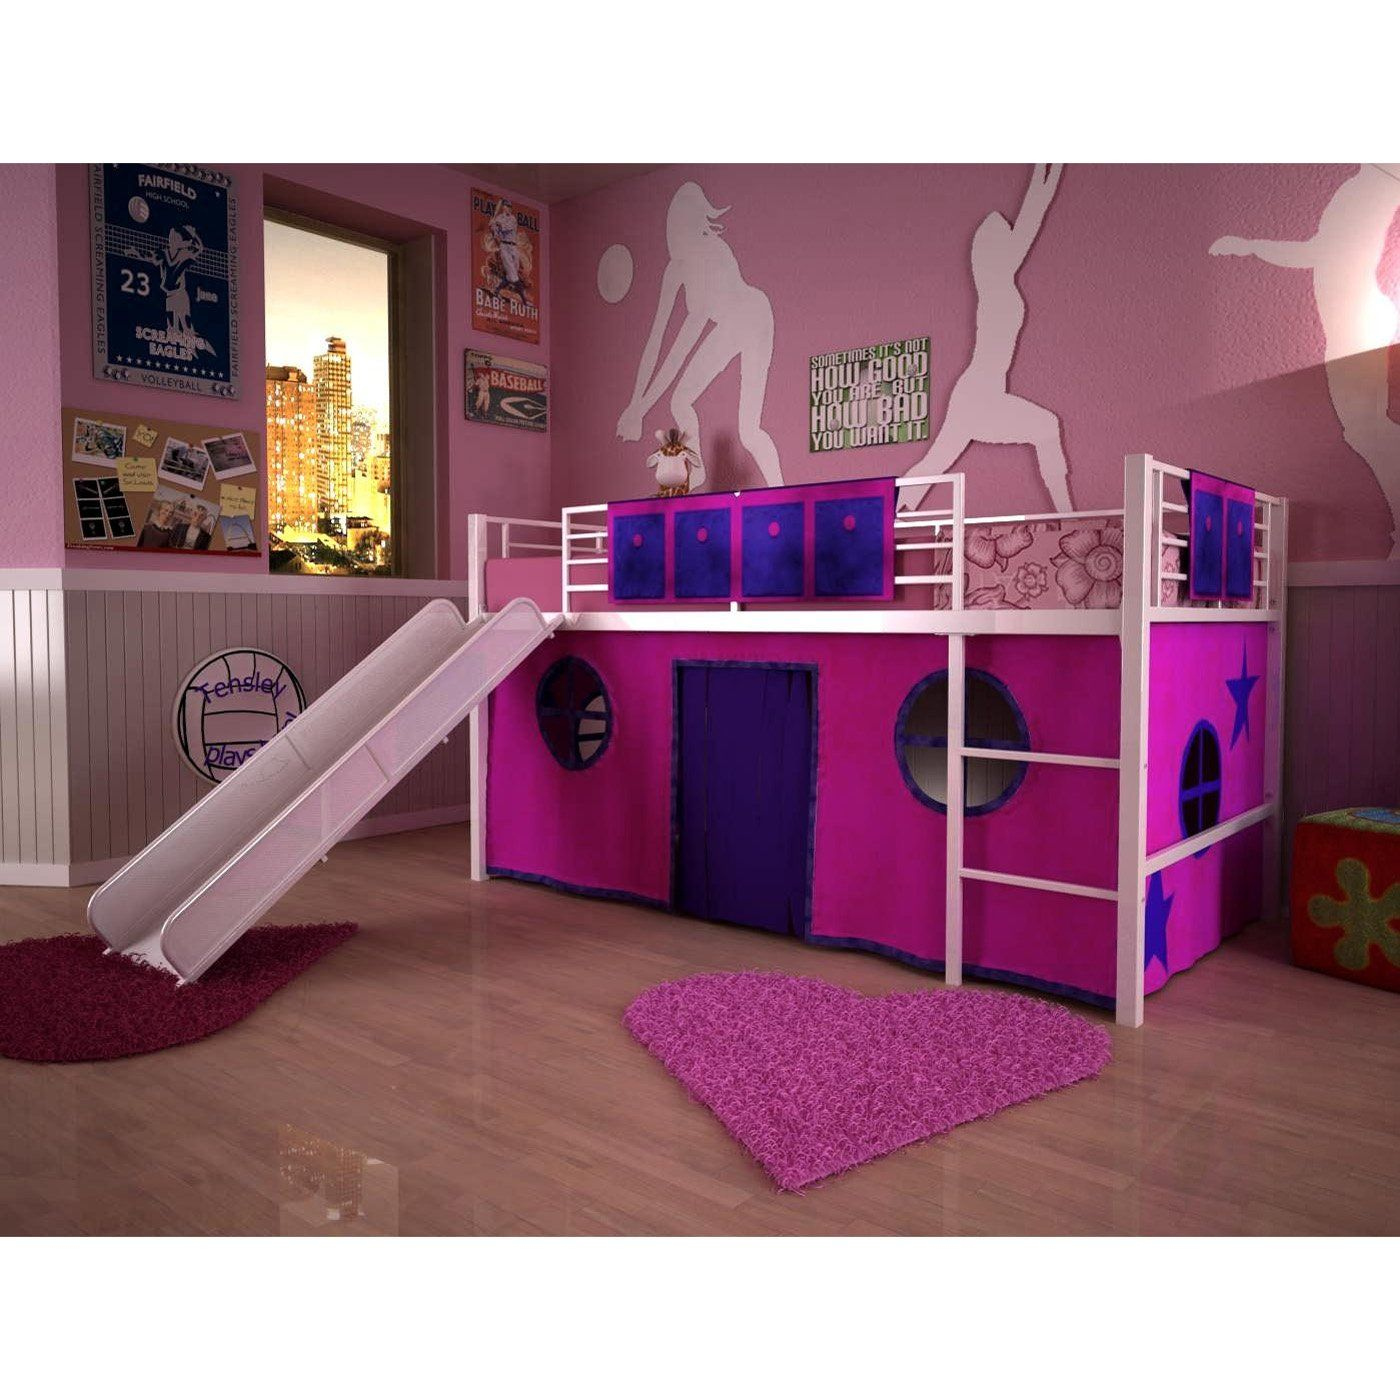 Cool Bunk Beds For Teens Girls Loft Beds For Teens  Berg Furniture Play And Study Loft Bed